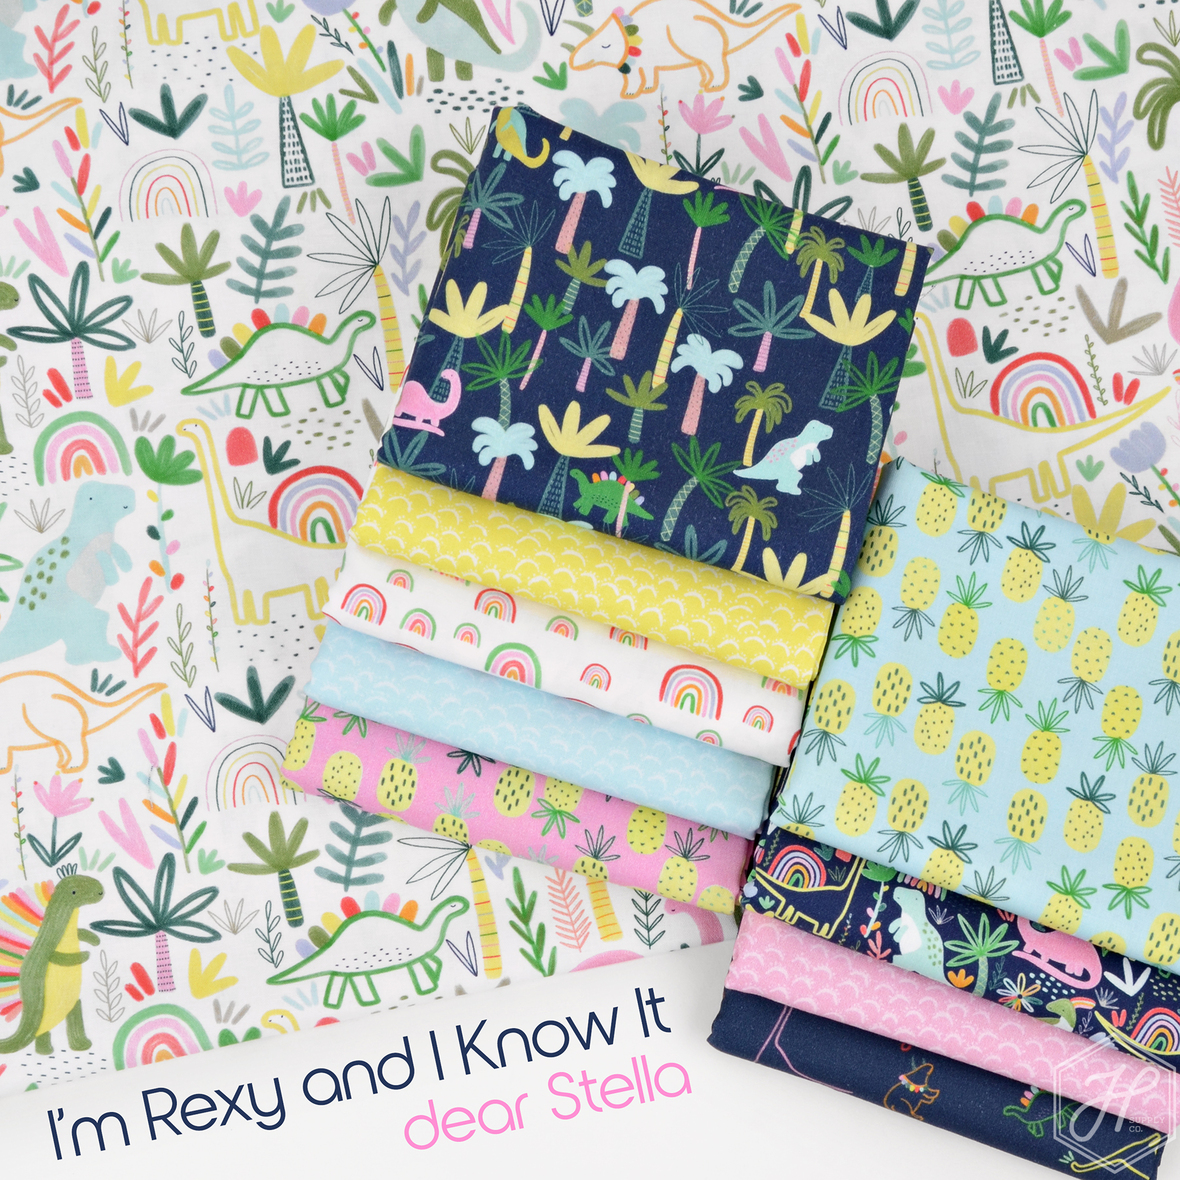 Im Rexy and I Know It fabric collection by dear stella at hawthorne supply co